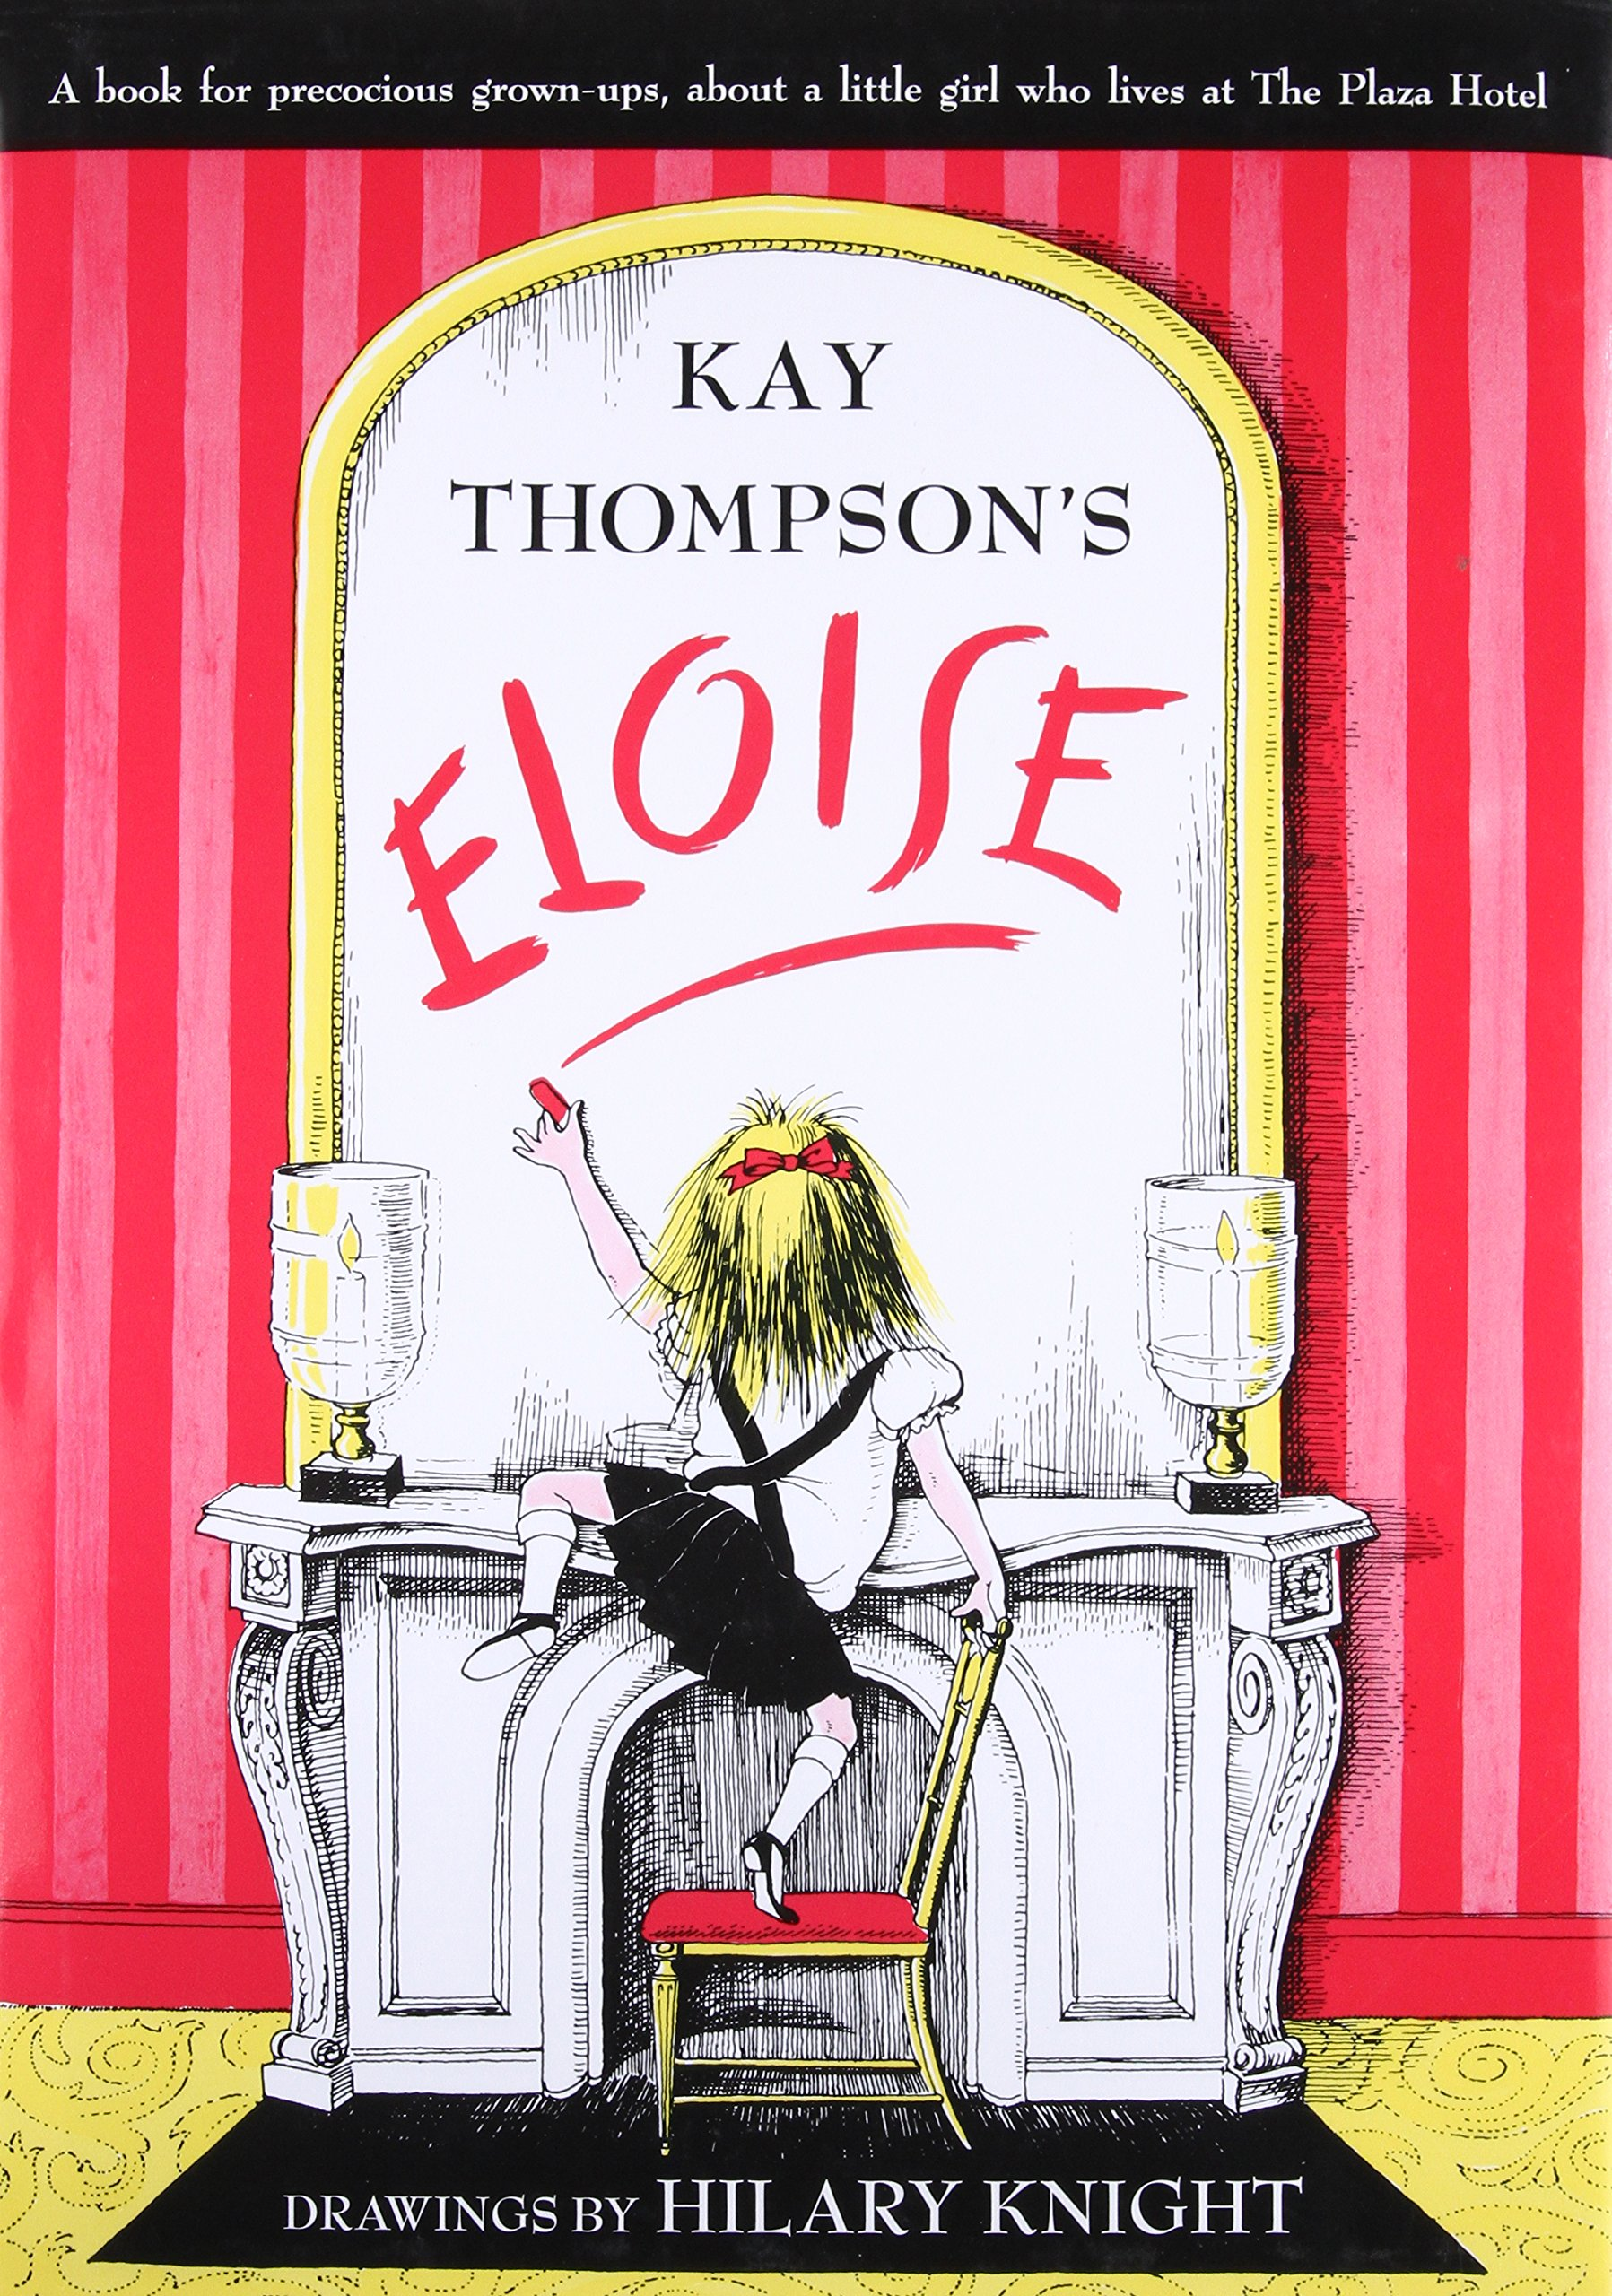 Eloise: A Book for Precocious Grown Ups by YOTTOY (Image #1)